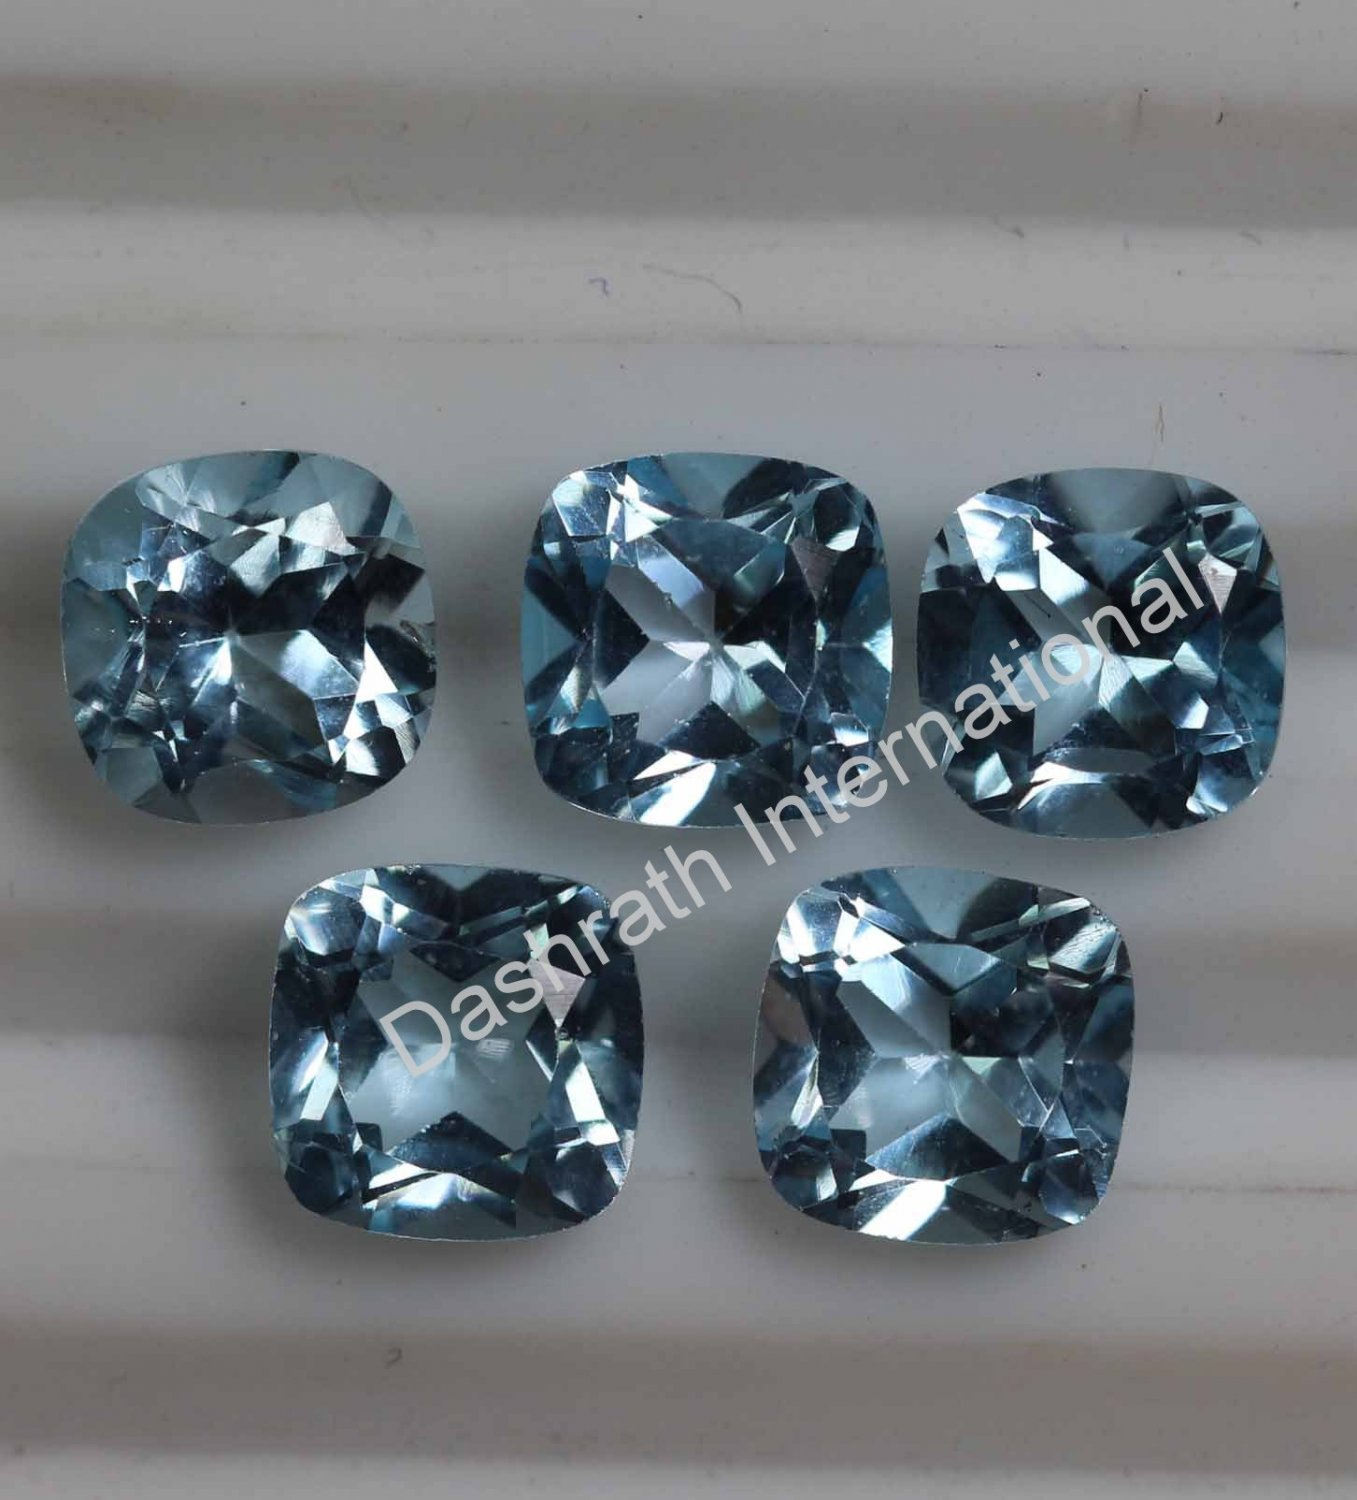 6mm Natural Sky Blue Topaz Faceted Cut Cushion 25 Pieces Lot Top Quality Loose Gemstone